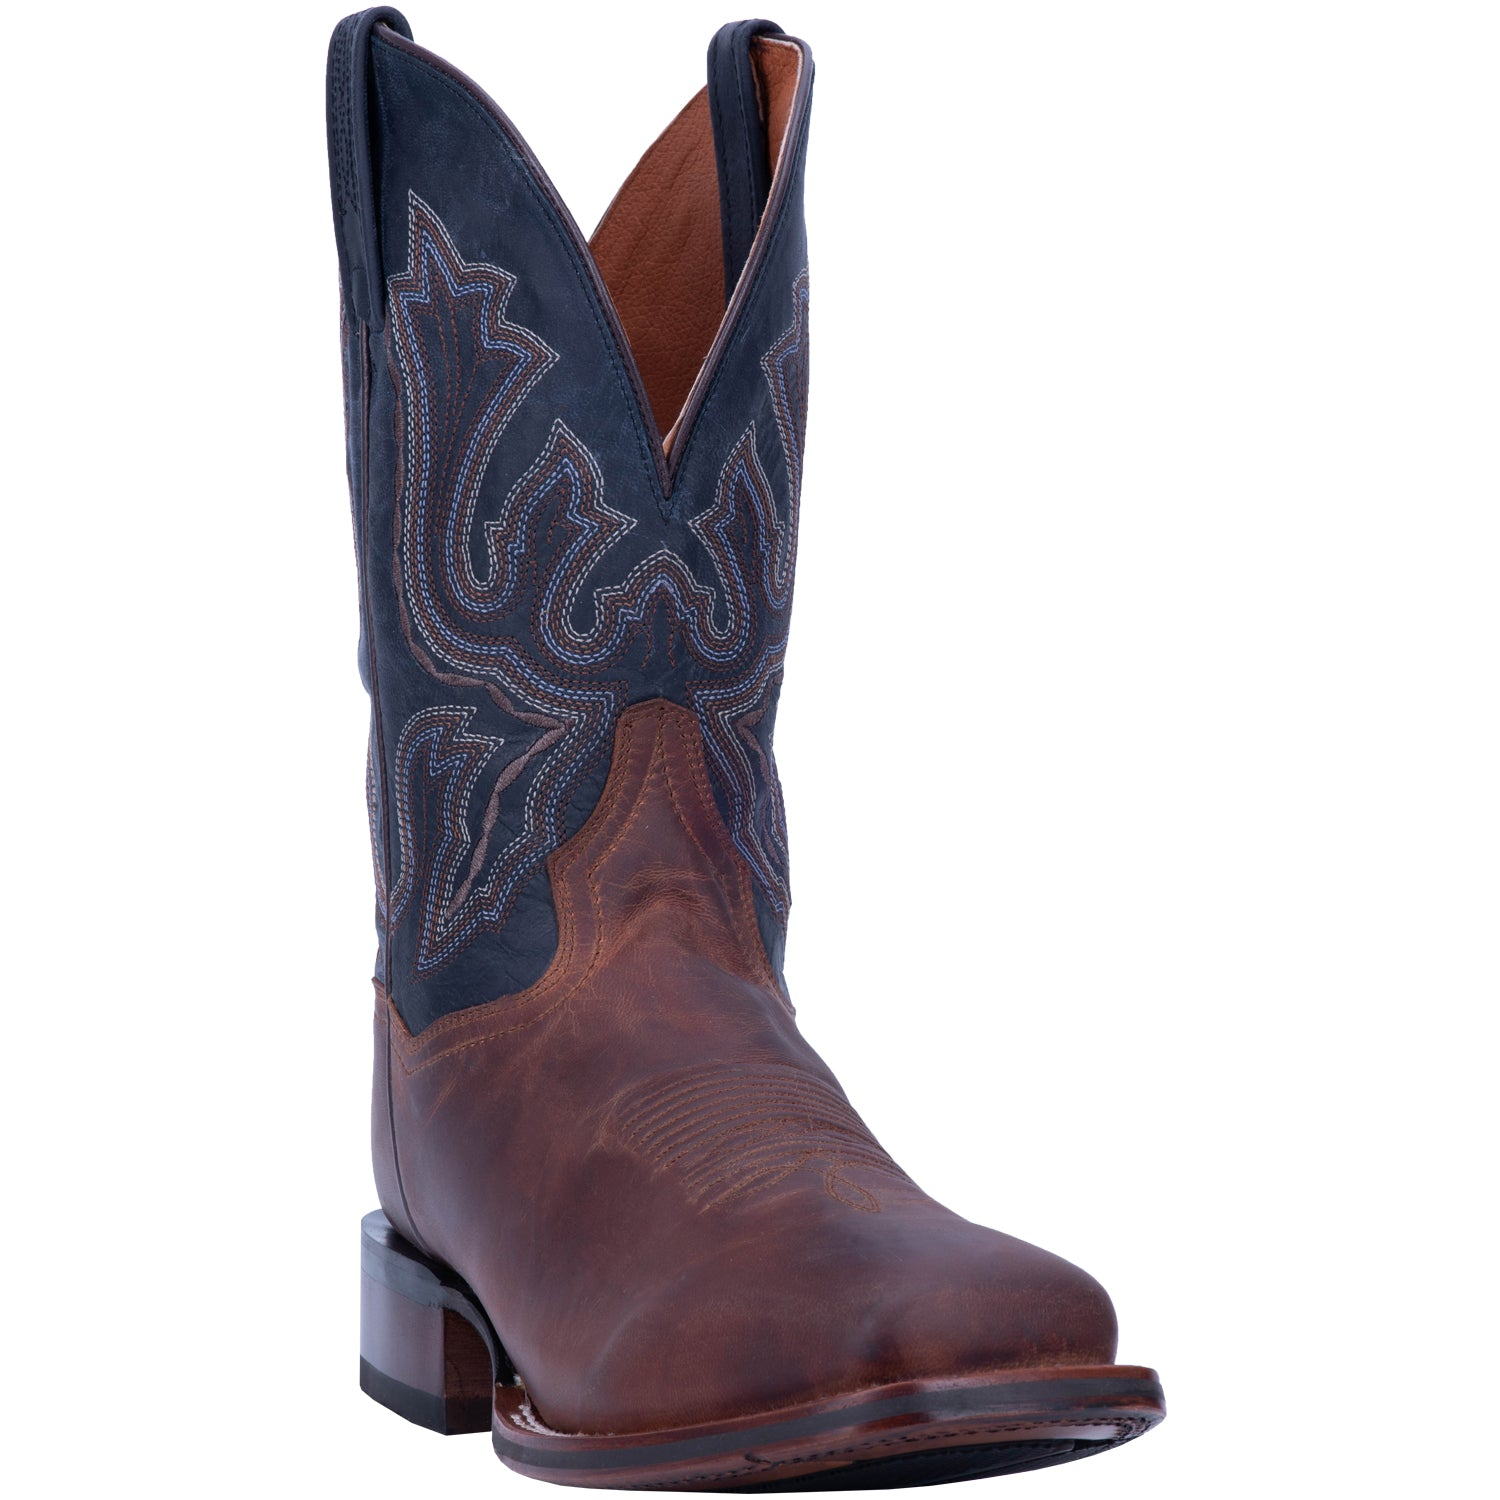 WINSLOW LEATHER BOOT 13289286172714